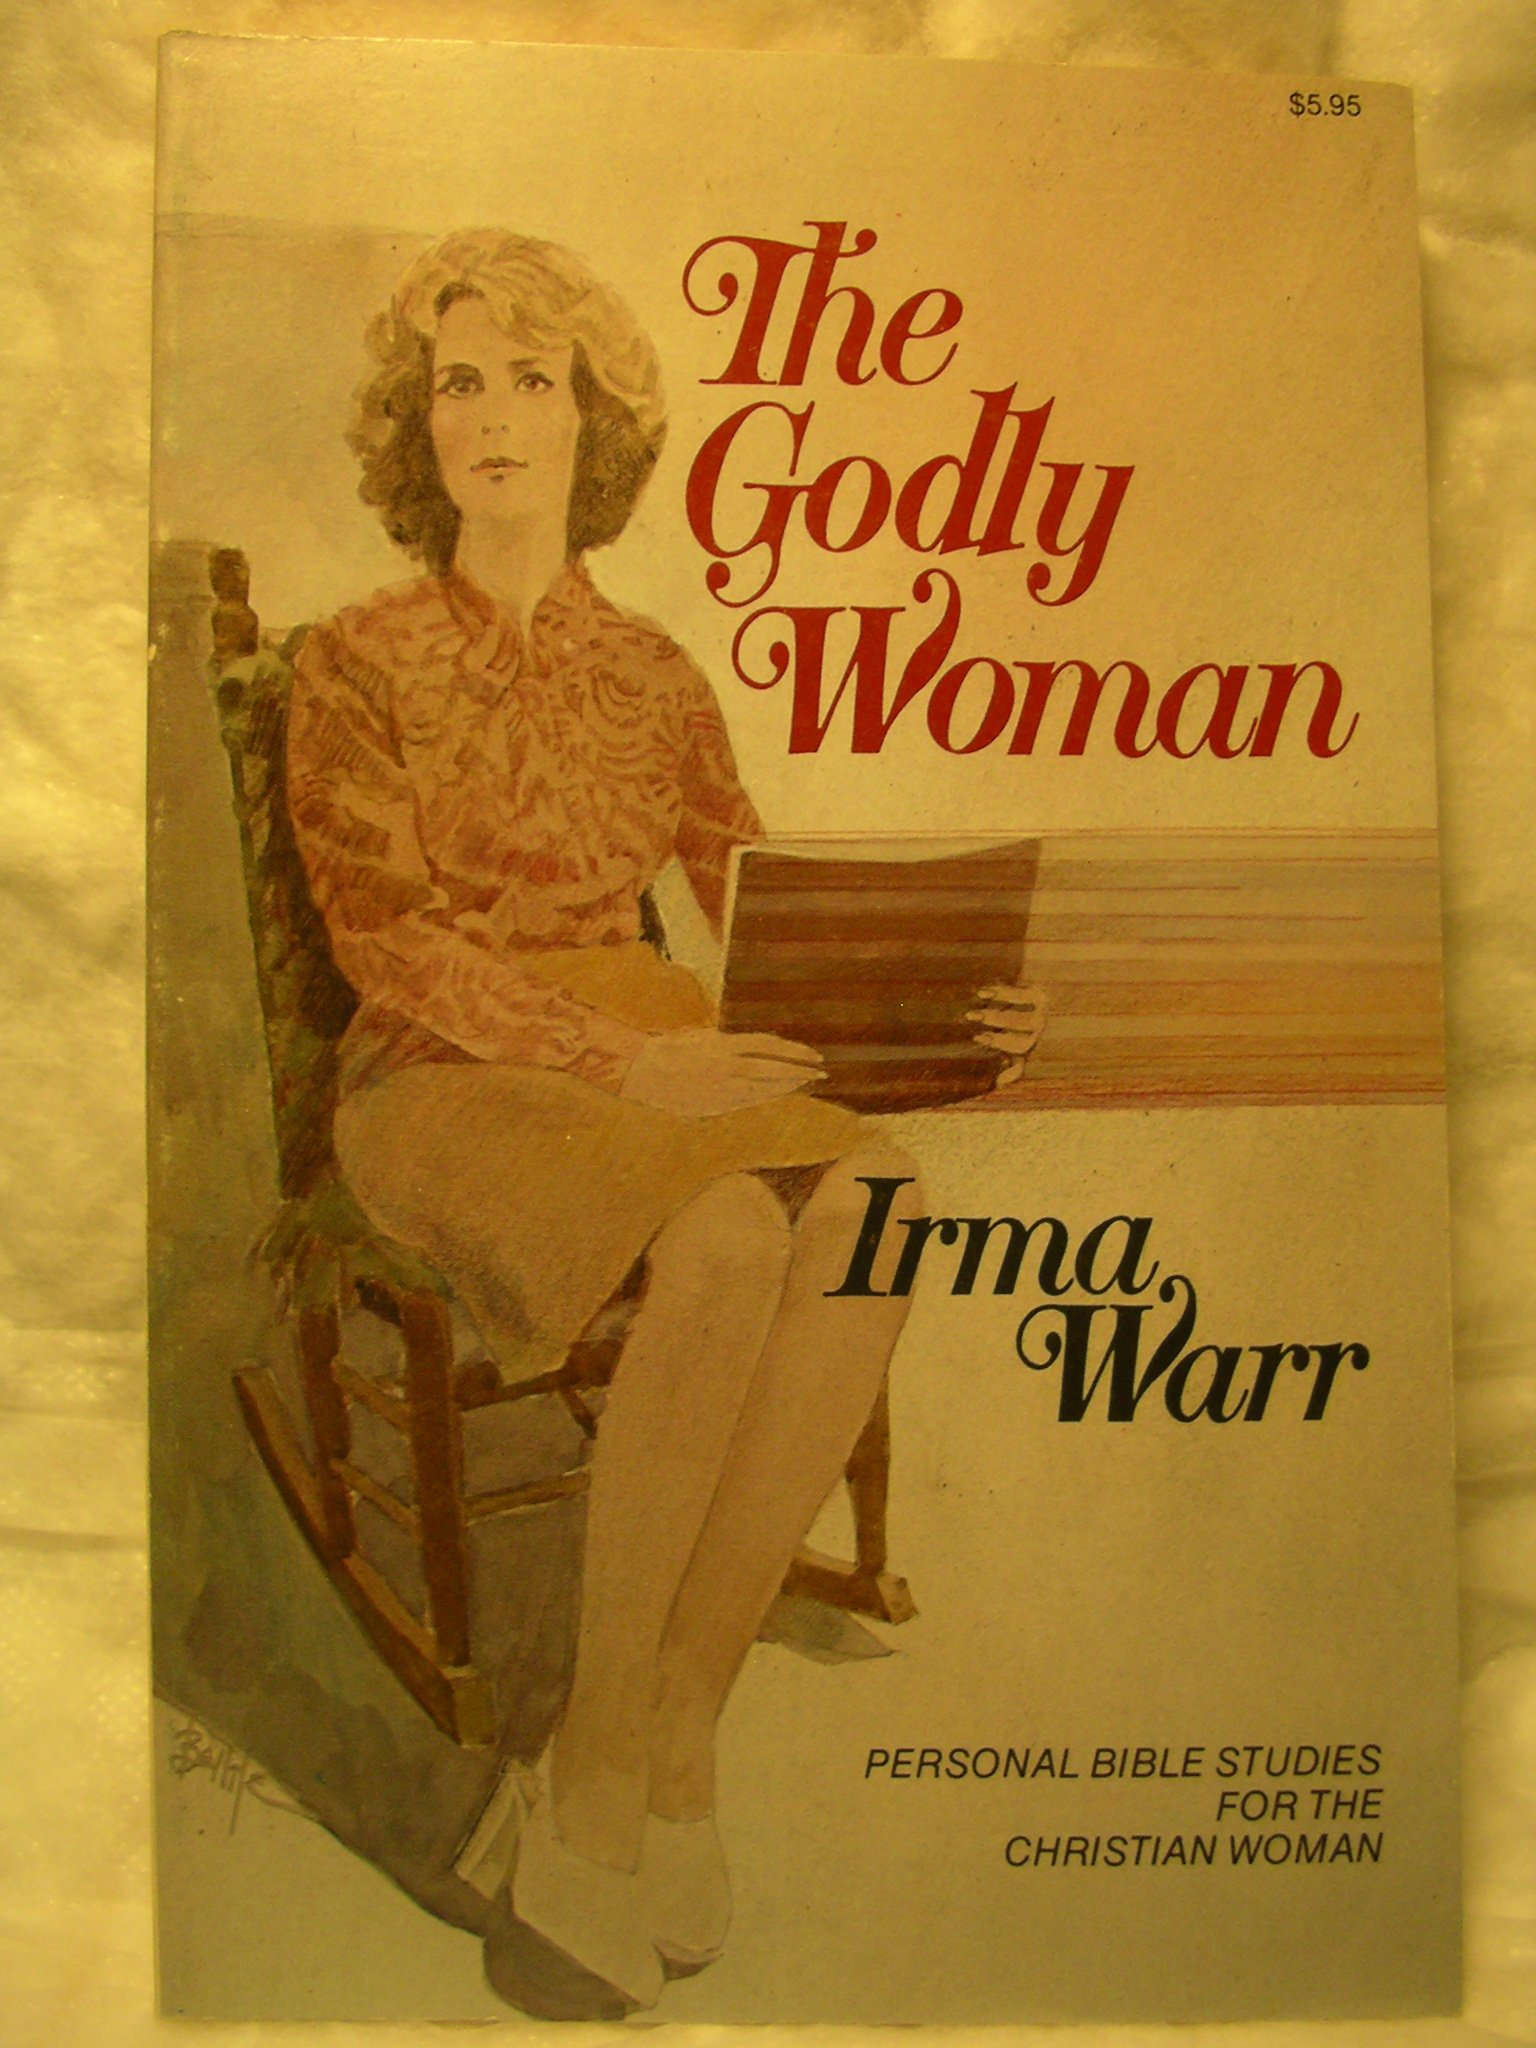 The Godly Woman: Personal Bible Studies for the Christian